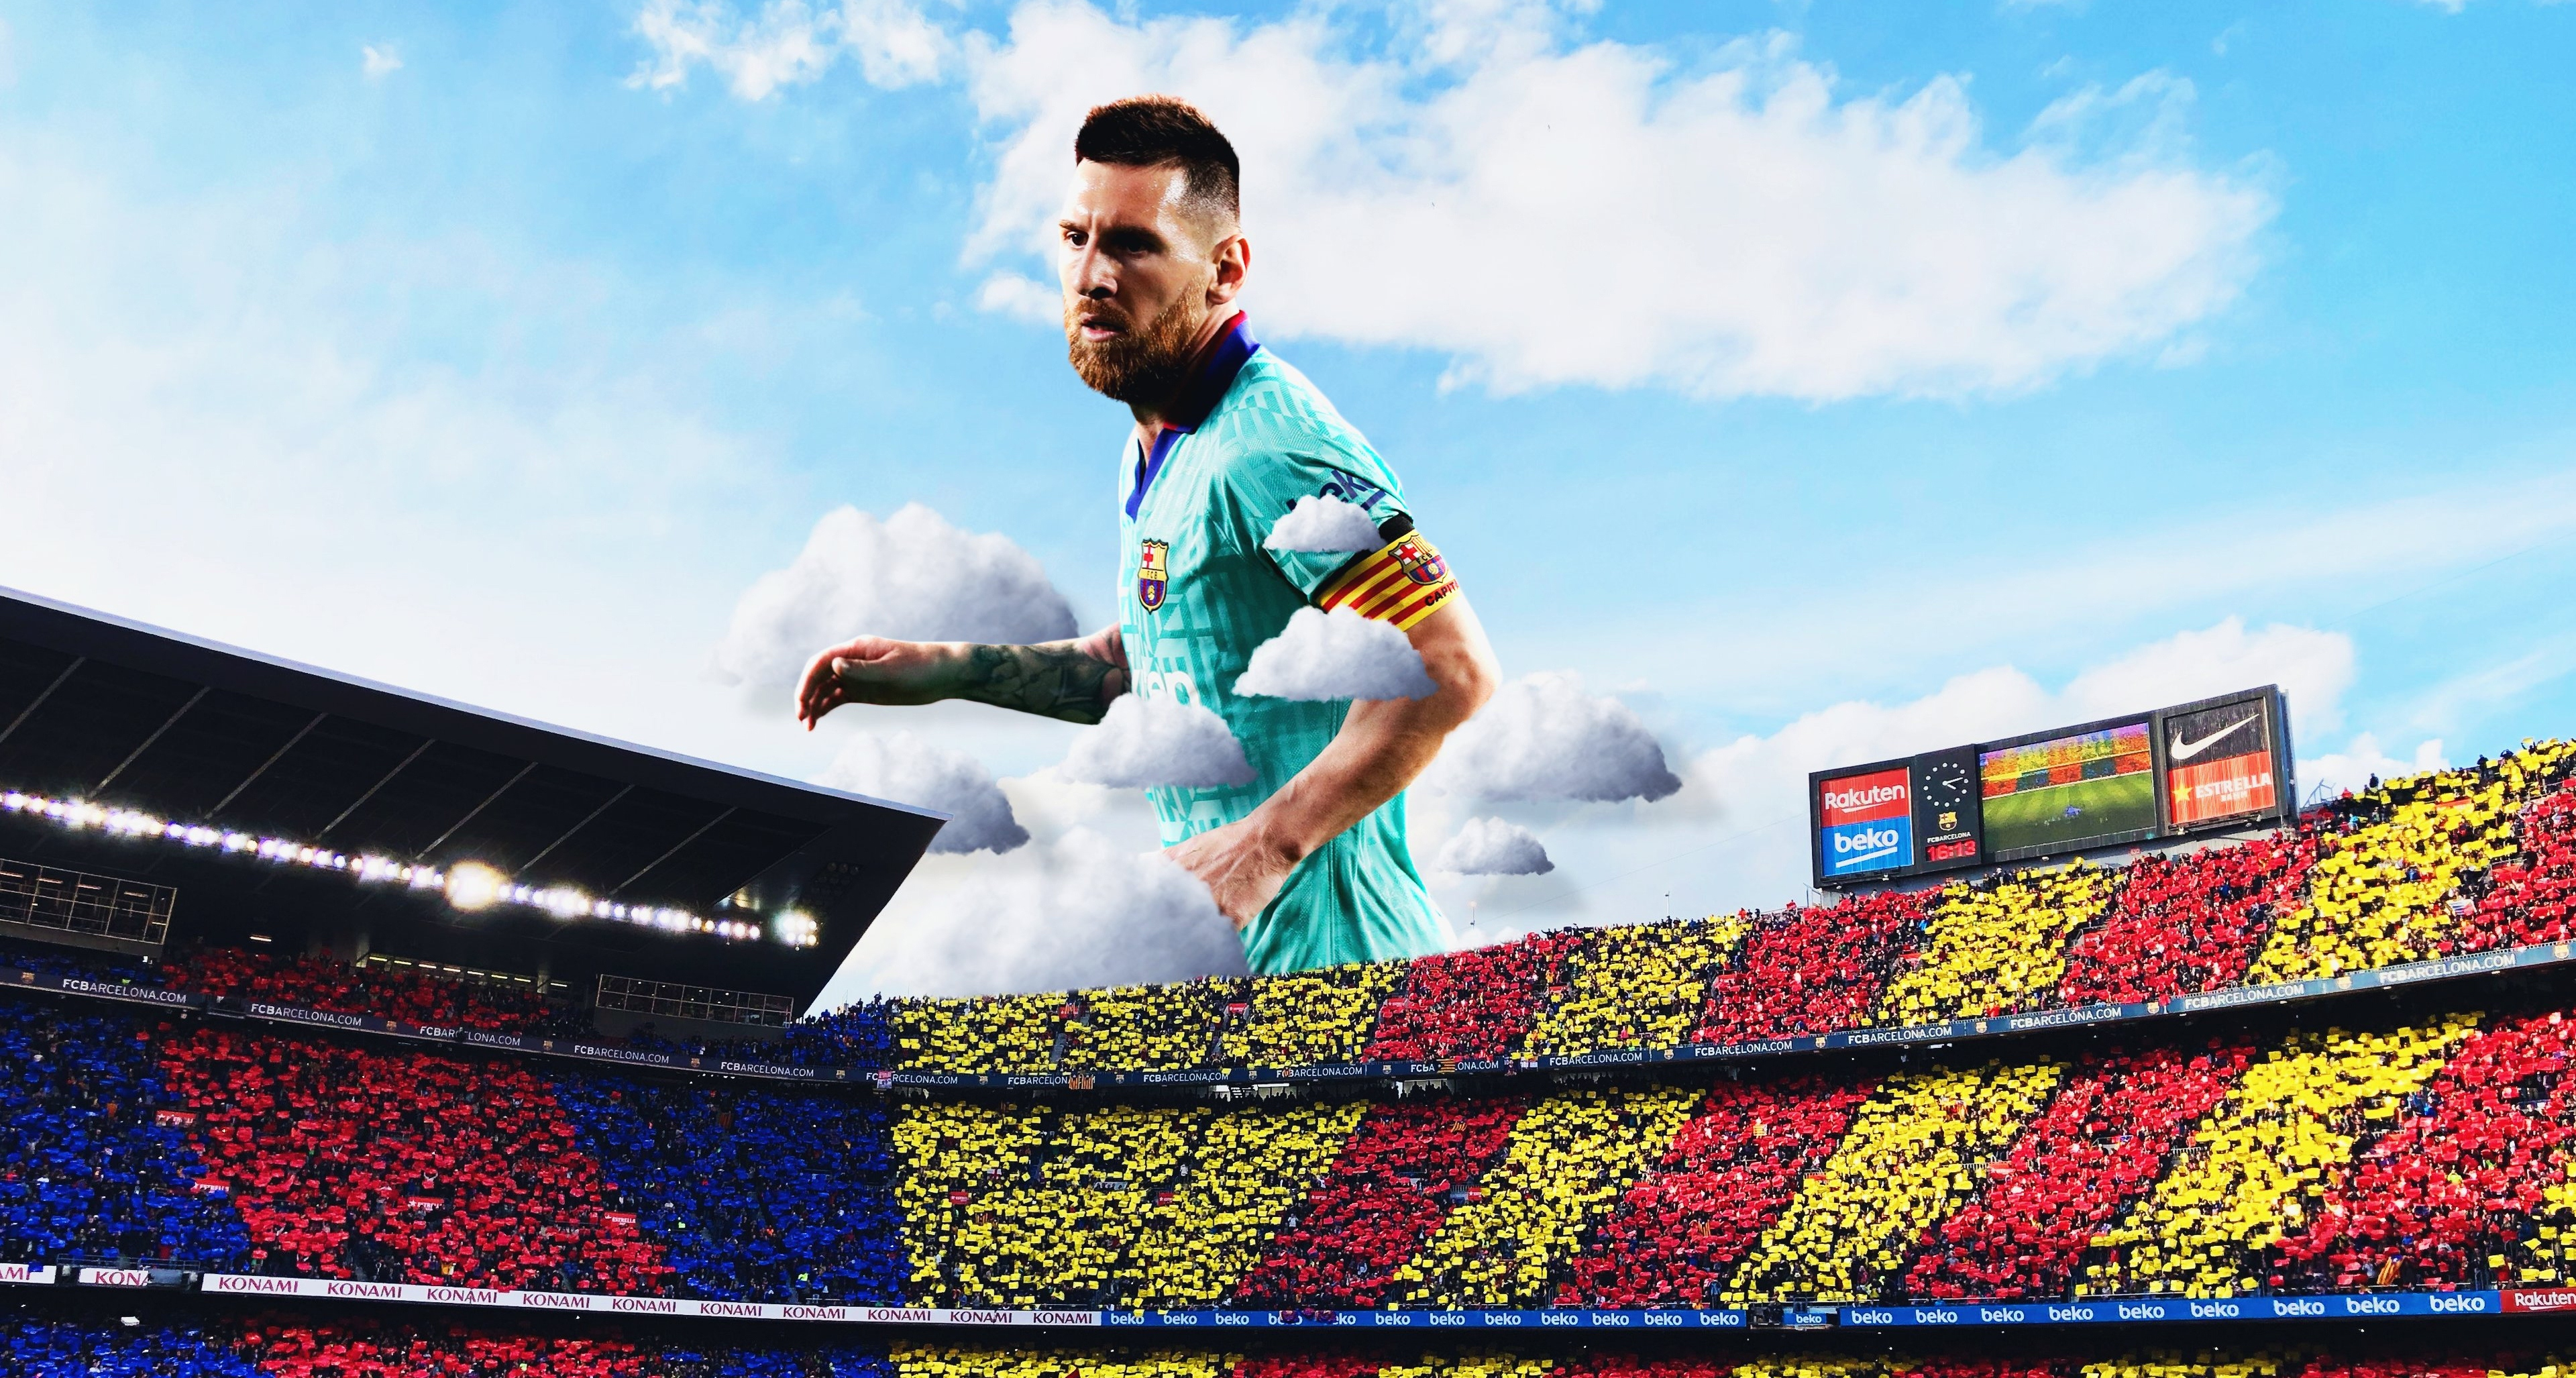 Wallpaper Soccer player Lionel Messi in the sky above a football field